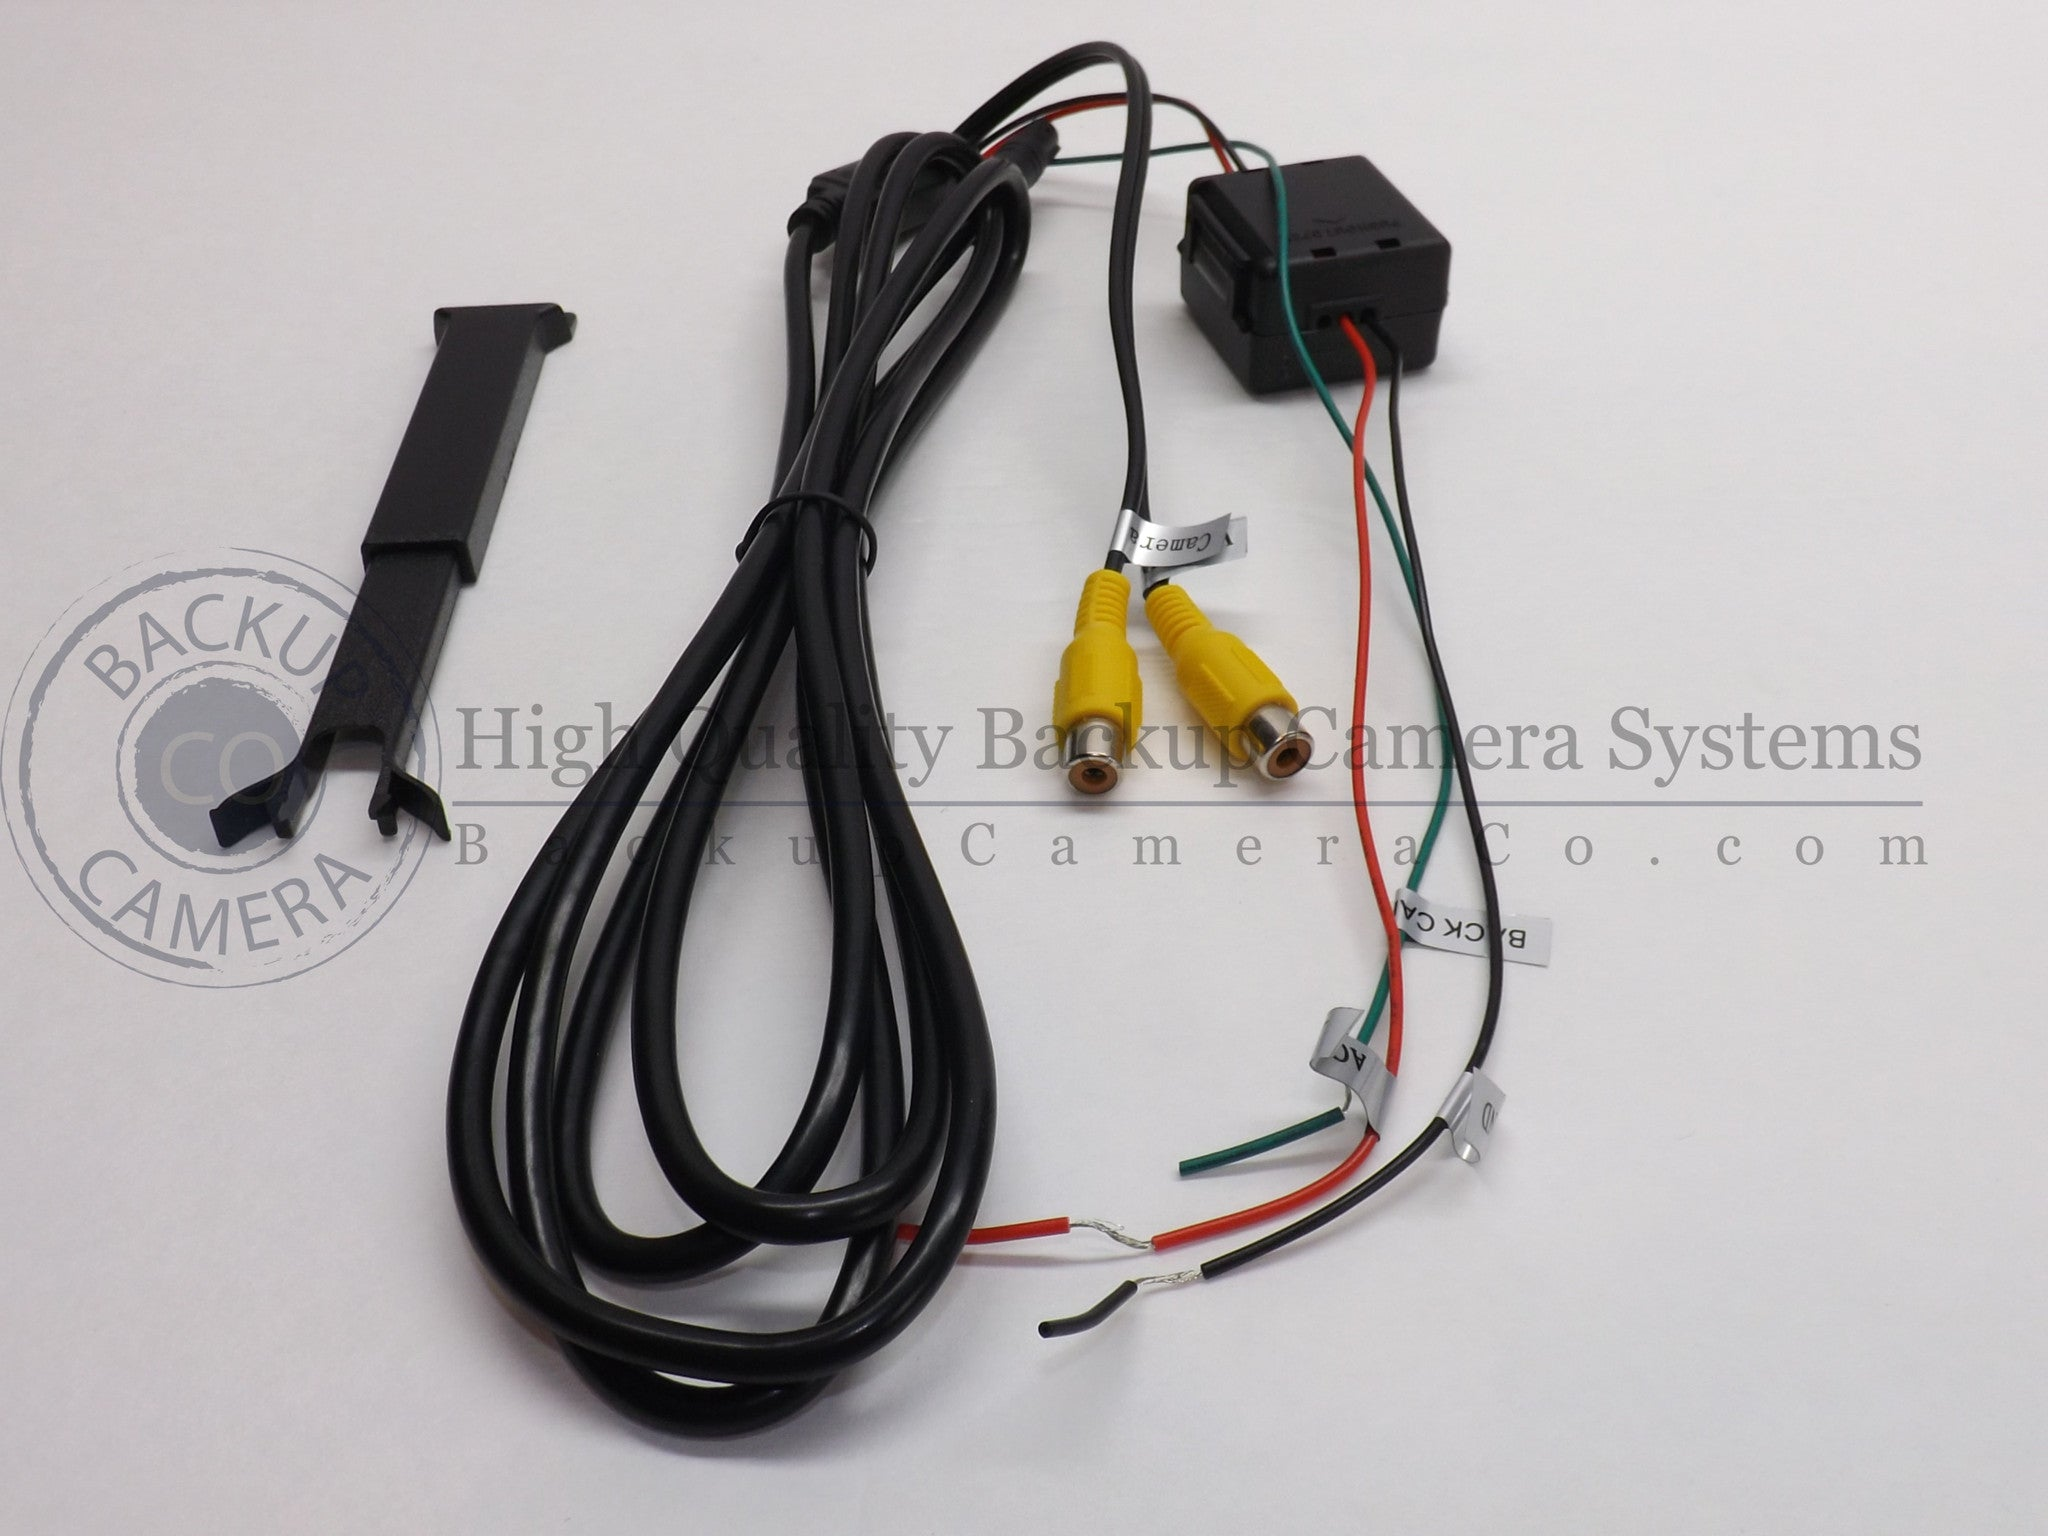 Perfect Reversing Camera Wiring Diagram Composition - Wiring Diagram ...